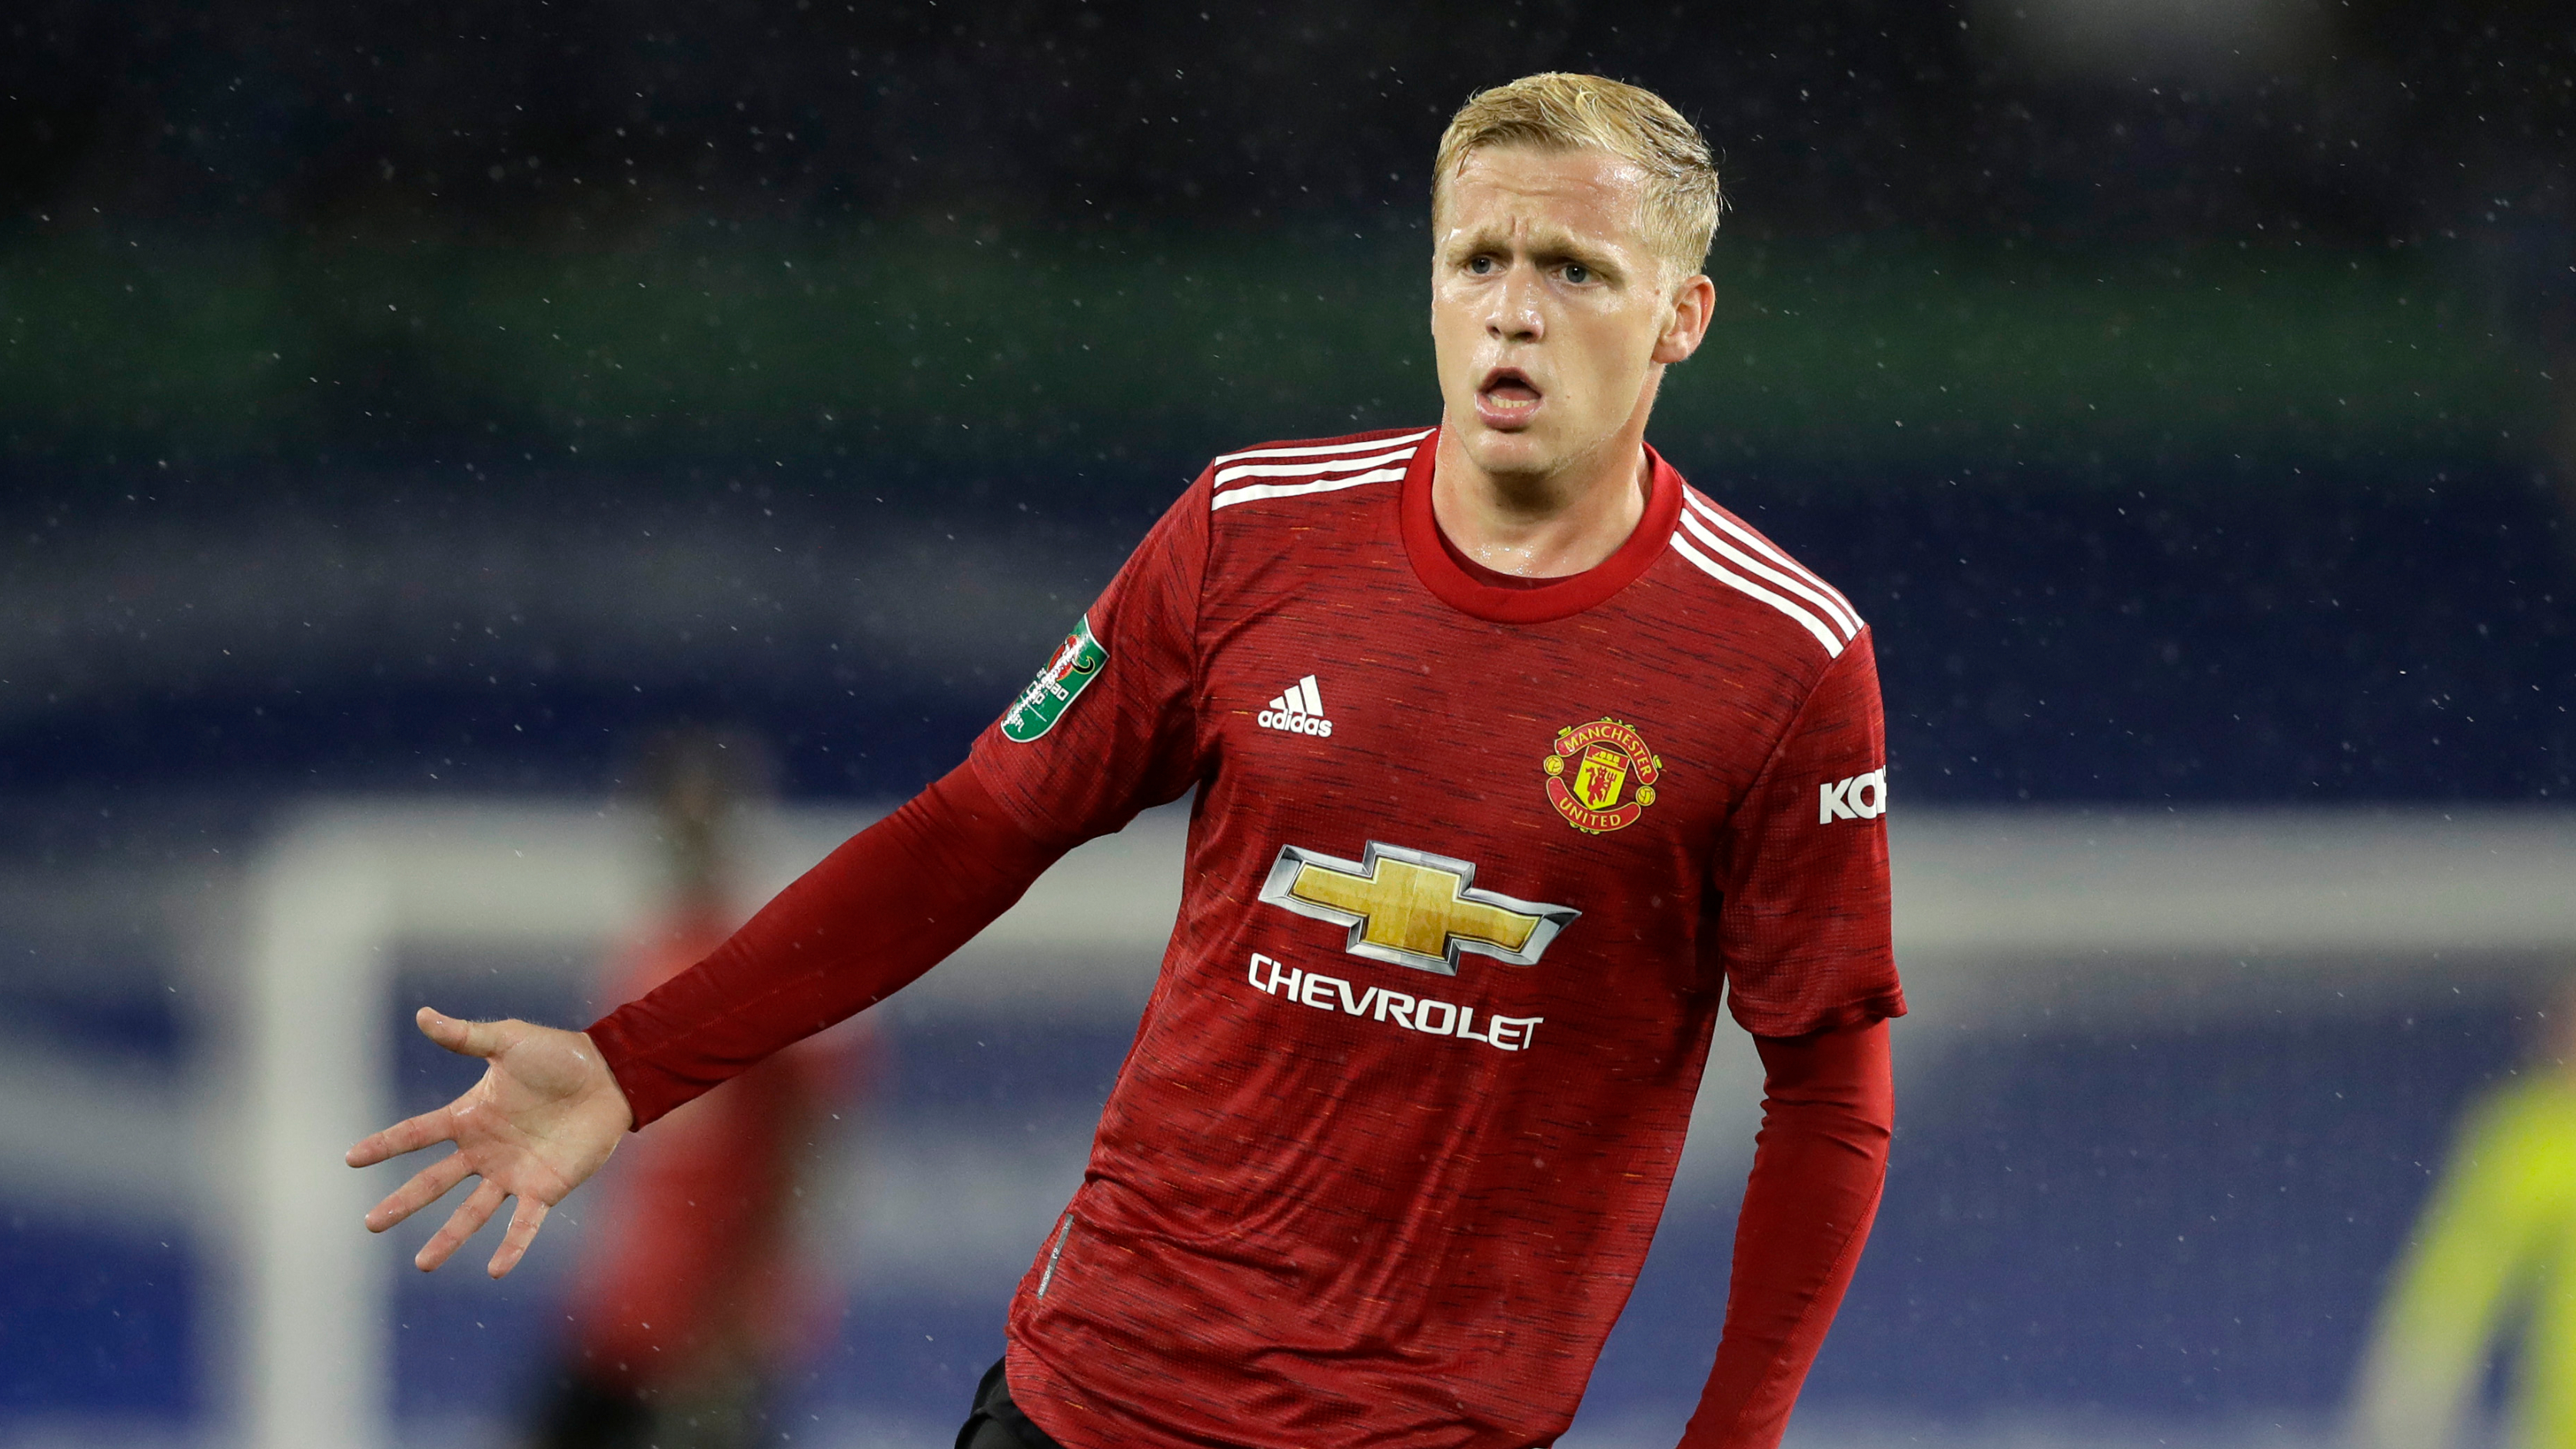 Van de Beek impresses as Man Utd reach League Cup quarter-finals